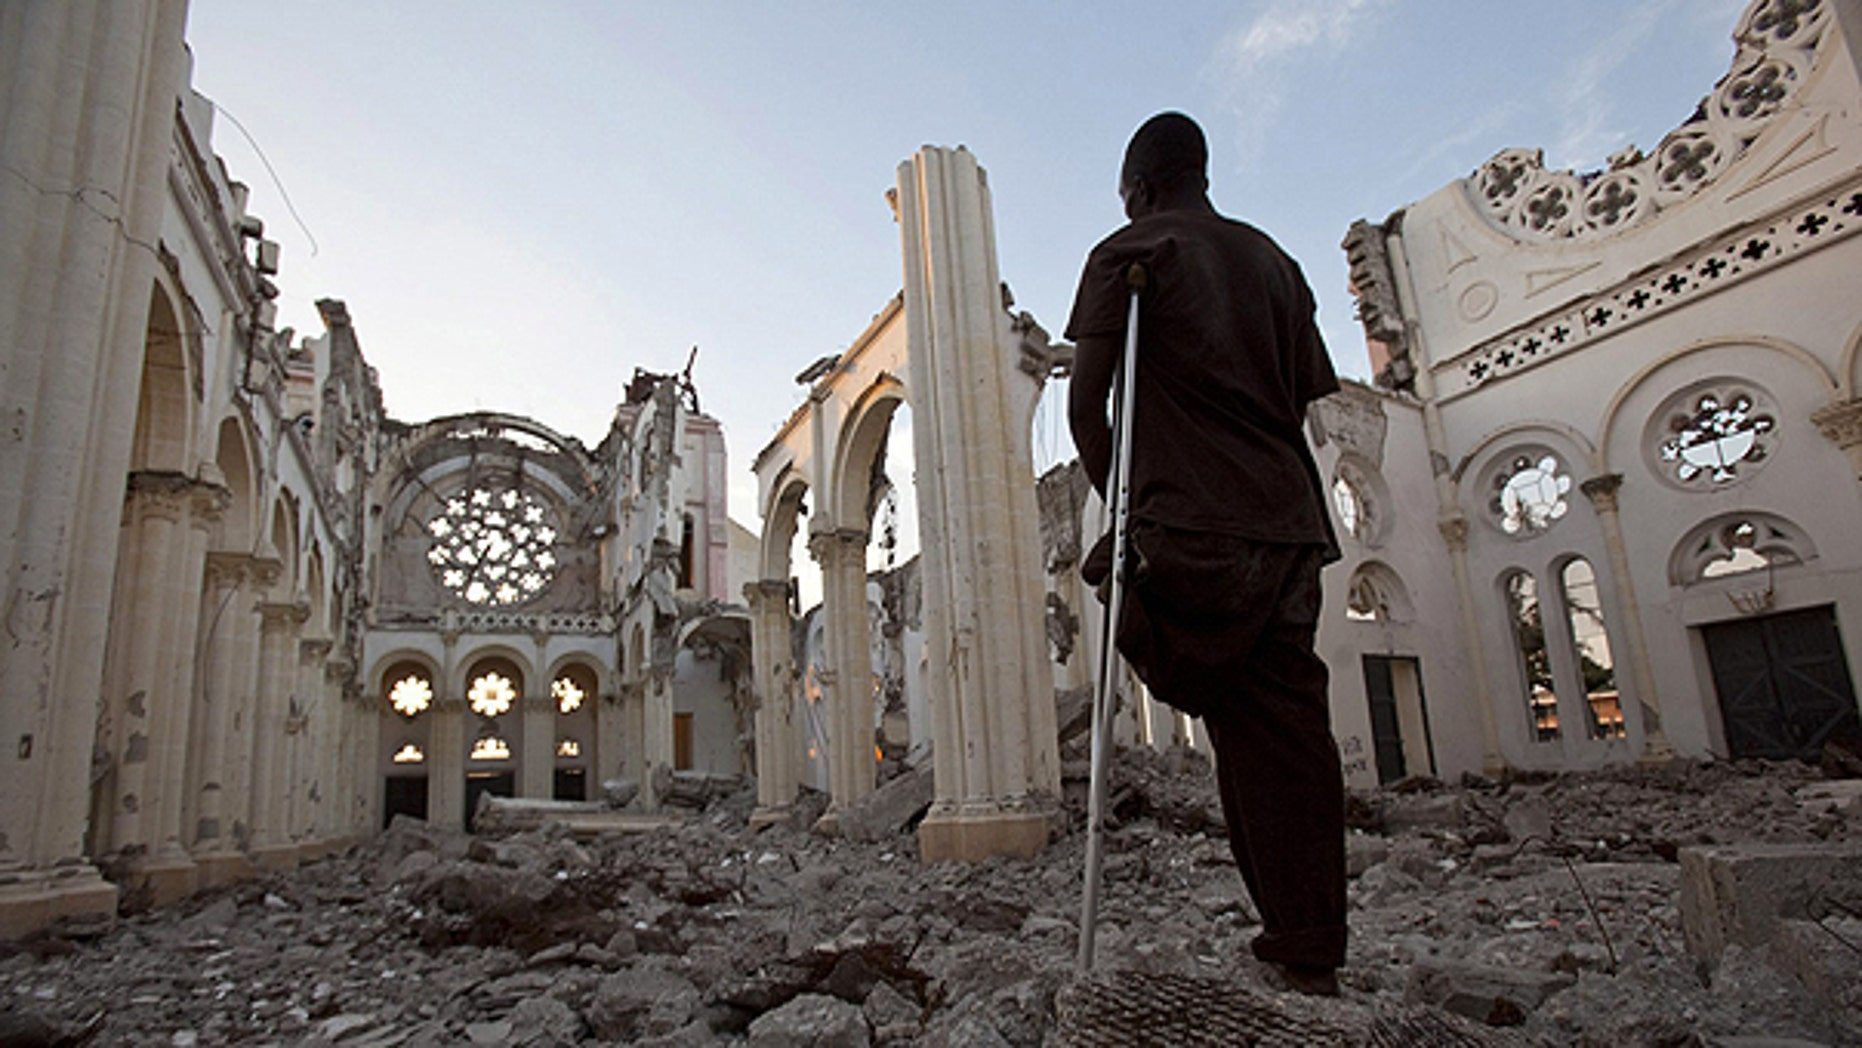 Jan. 11: Icaris Celnet stands in the ruins of The Cathedral of Our Lady of the Assumption, often called Cathédrale de Port-au-Prince in Port-au-Prince, Haiti, on the eve of the first anniversary of the earthquake that killed more than 200,000 people and displaced some 1.5 million more.